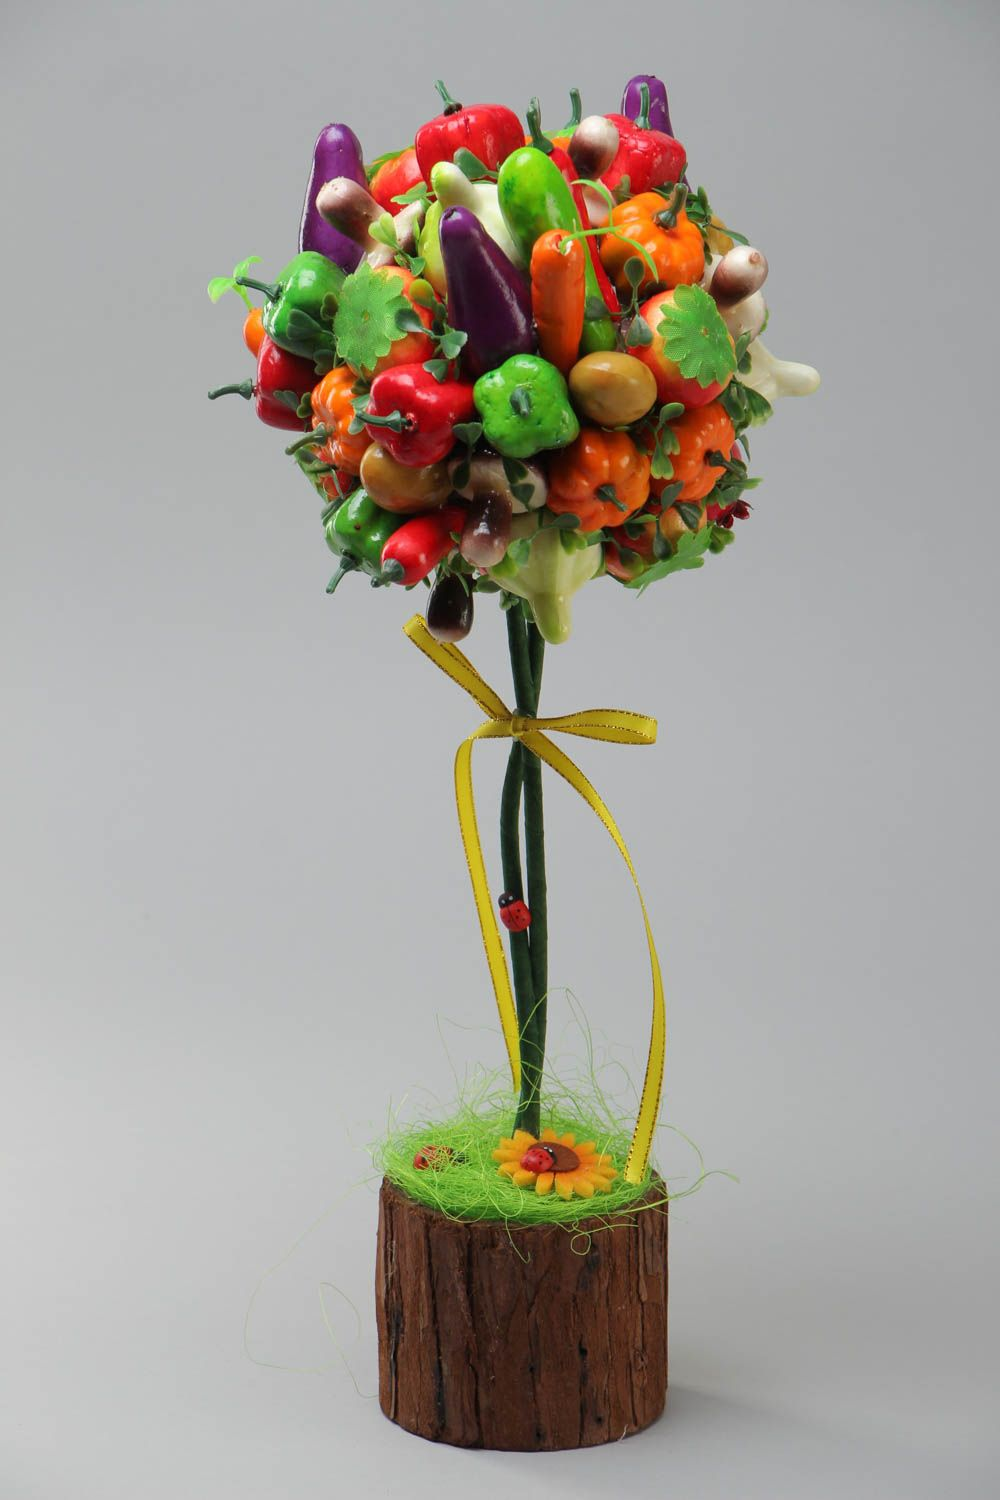 Handmade decorative bright topiary tree with fruit and vegetables for table decor photo 2